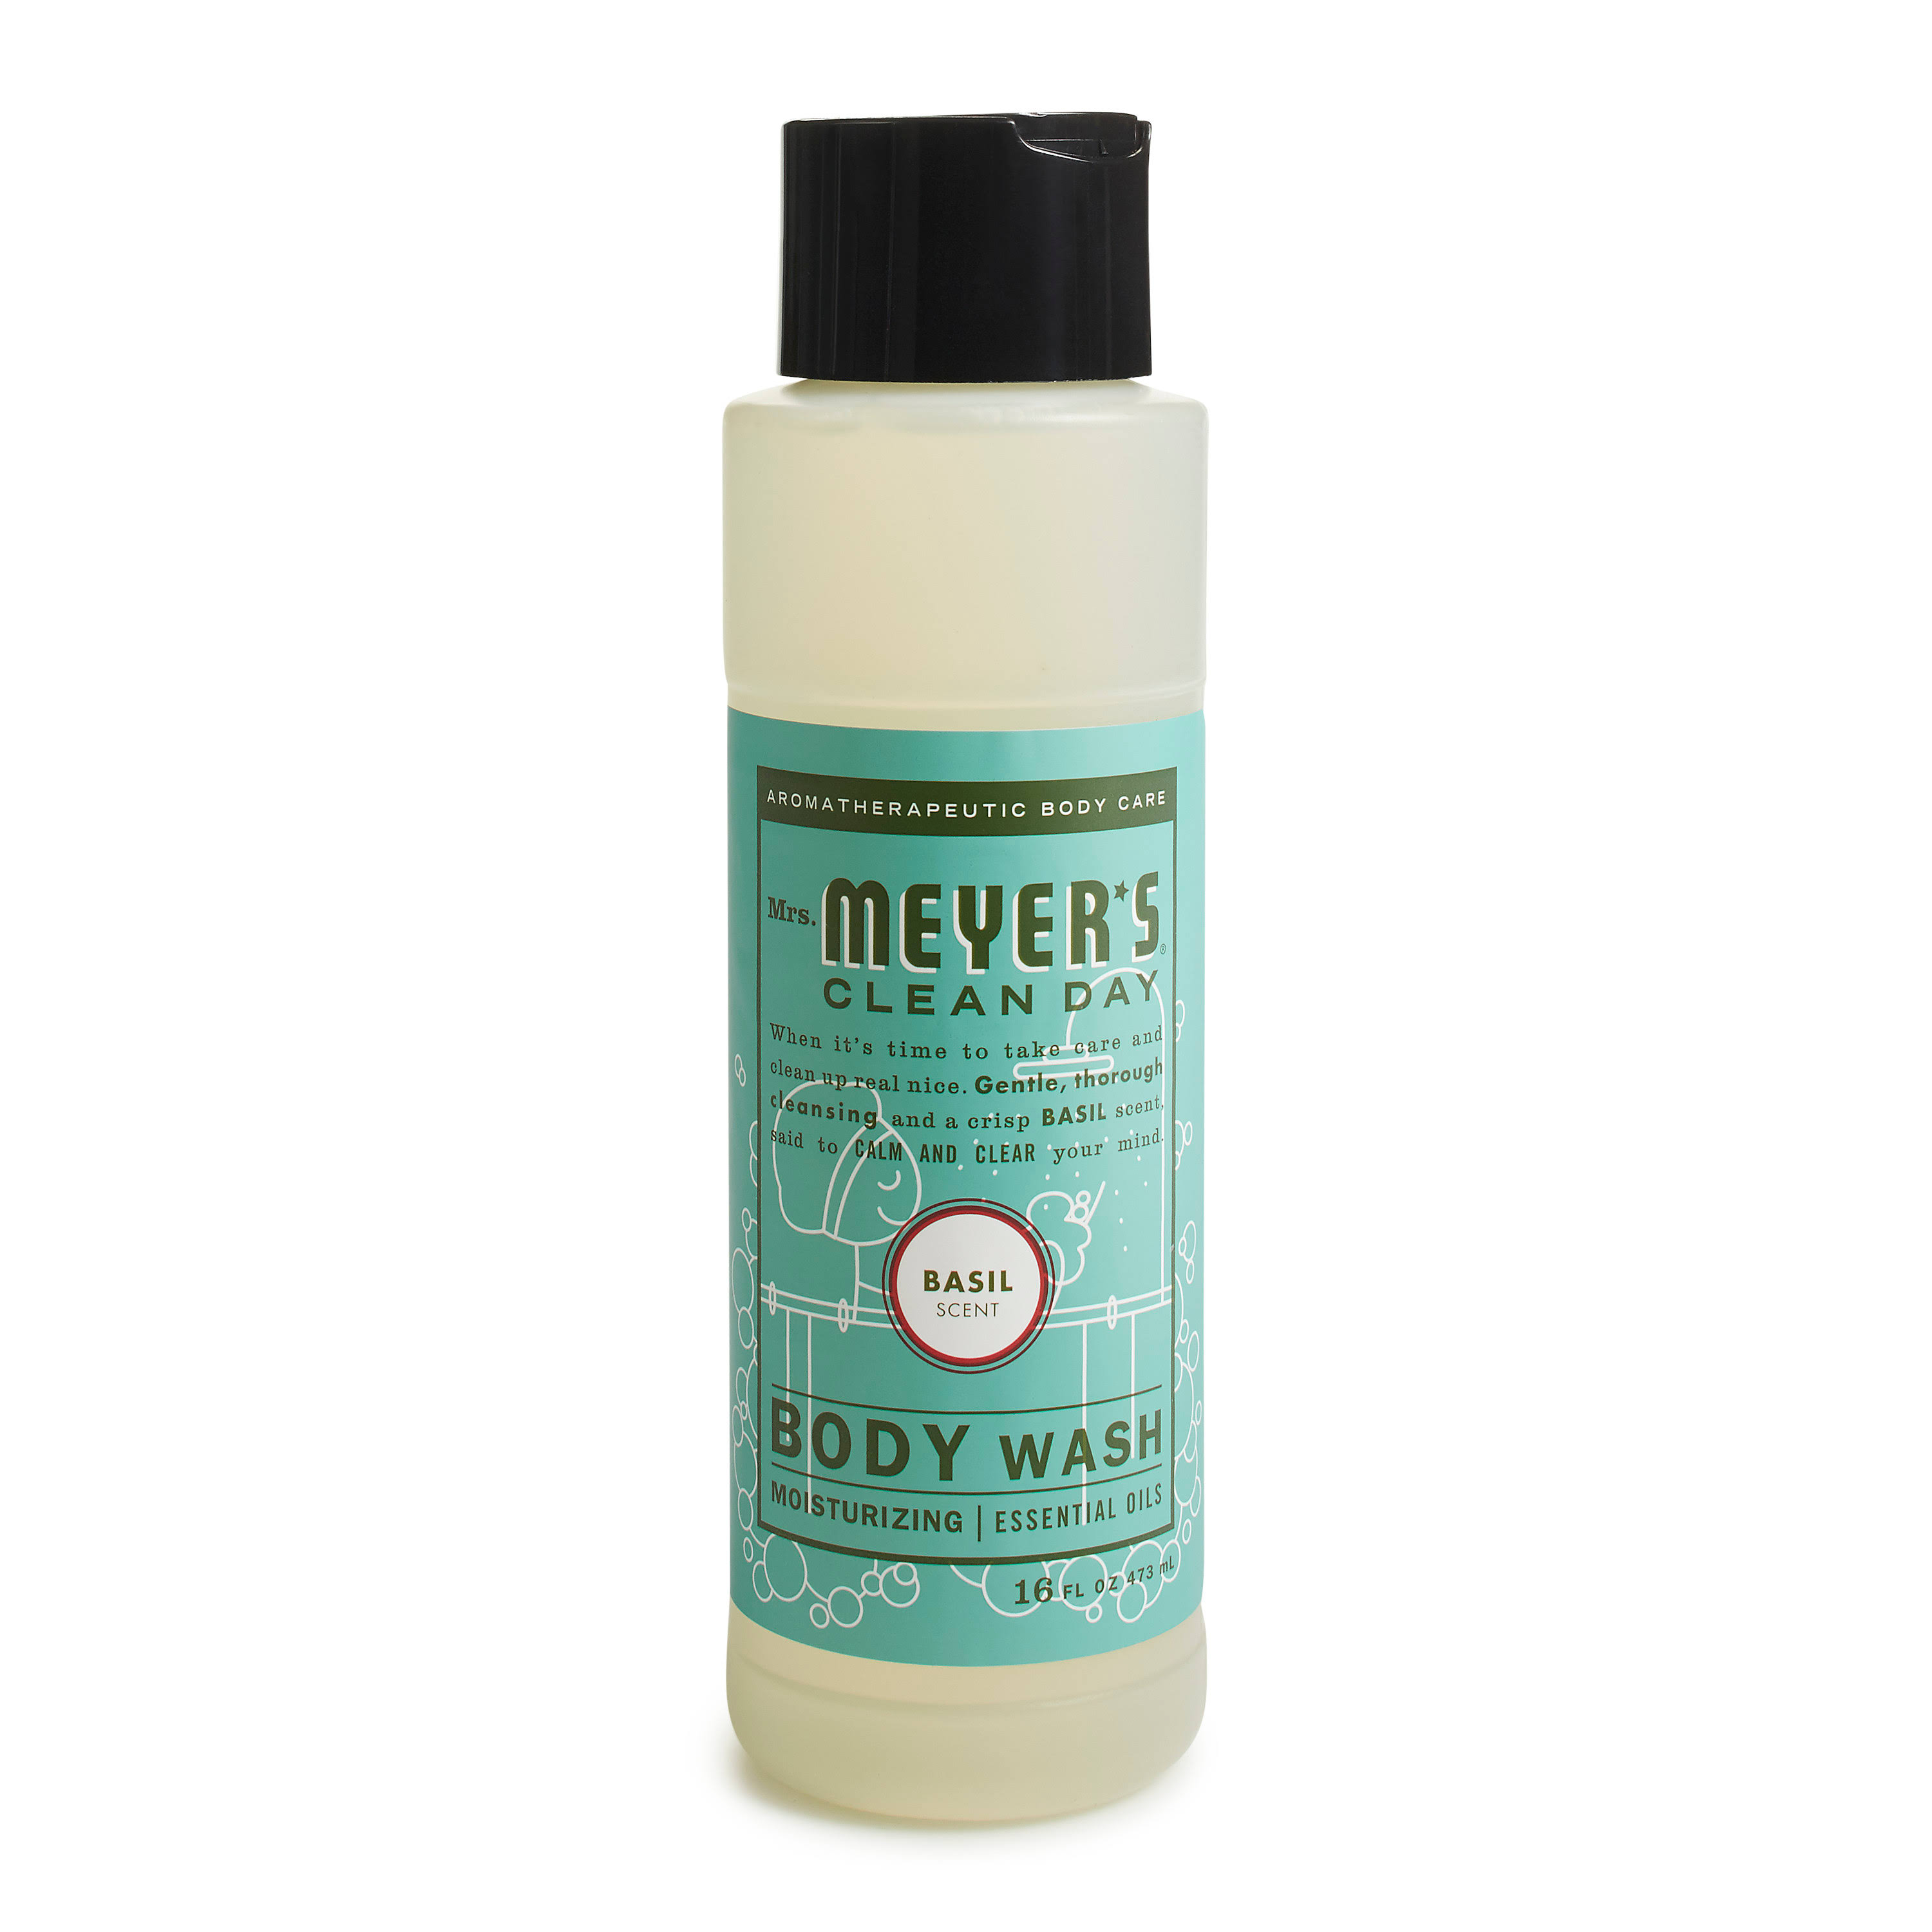 Mrs. Meyer's Clean Day Body Wash - Basil, 16oz